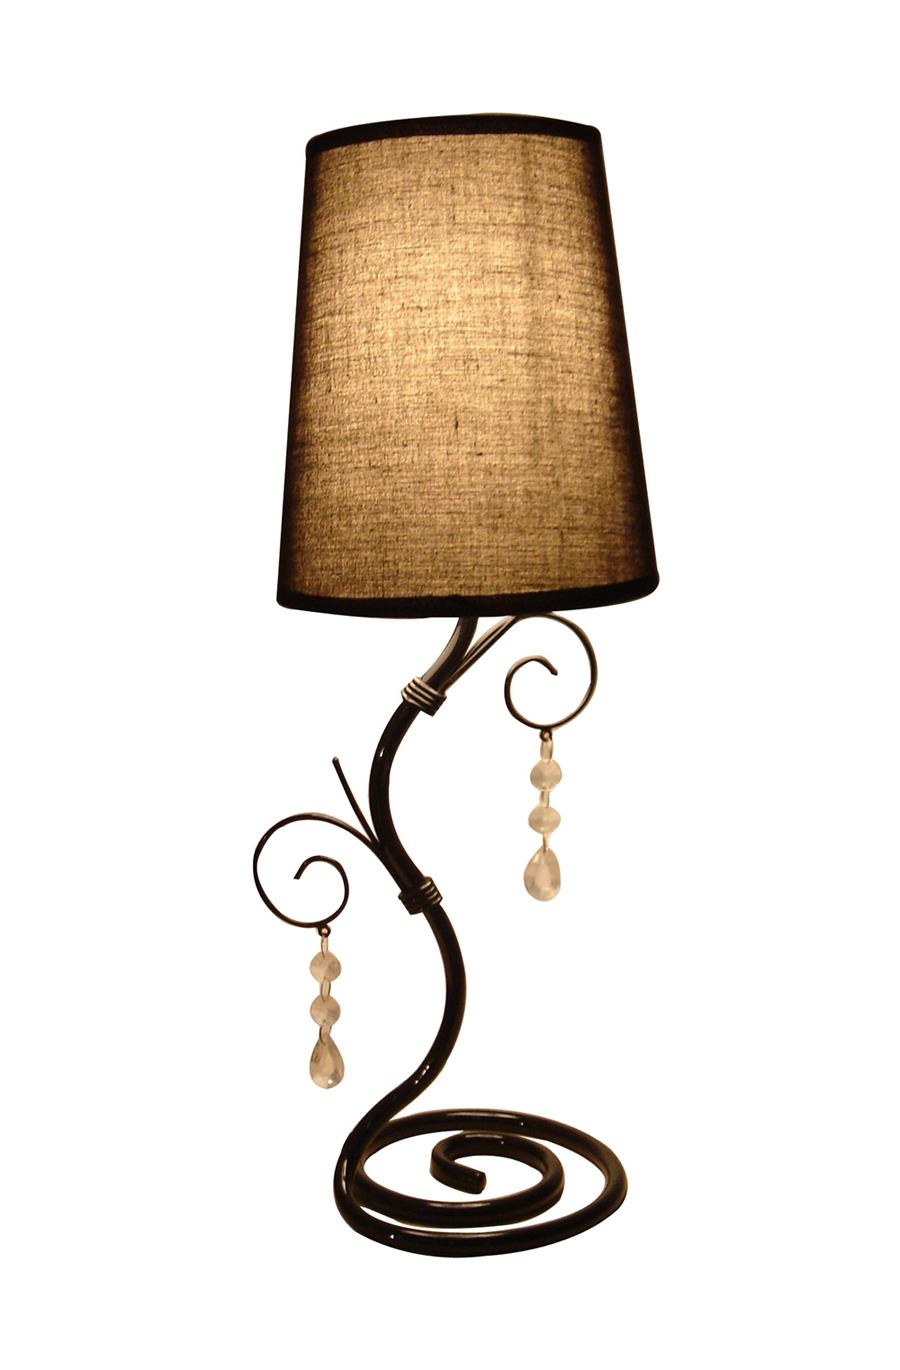 Twisted Vine Table Lamp with Brown Shade and Hanging Beads